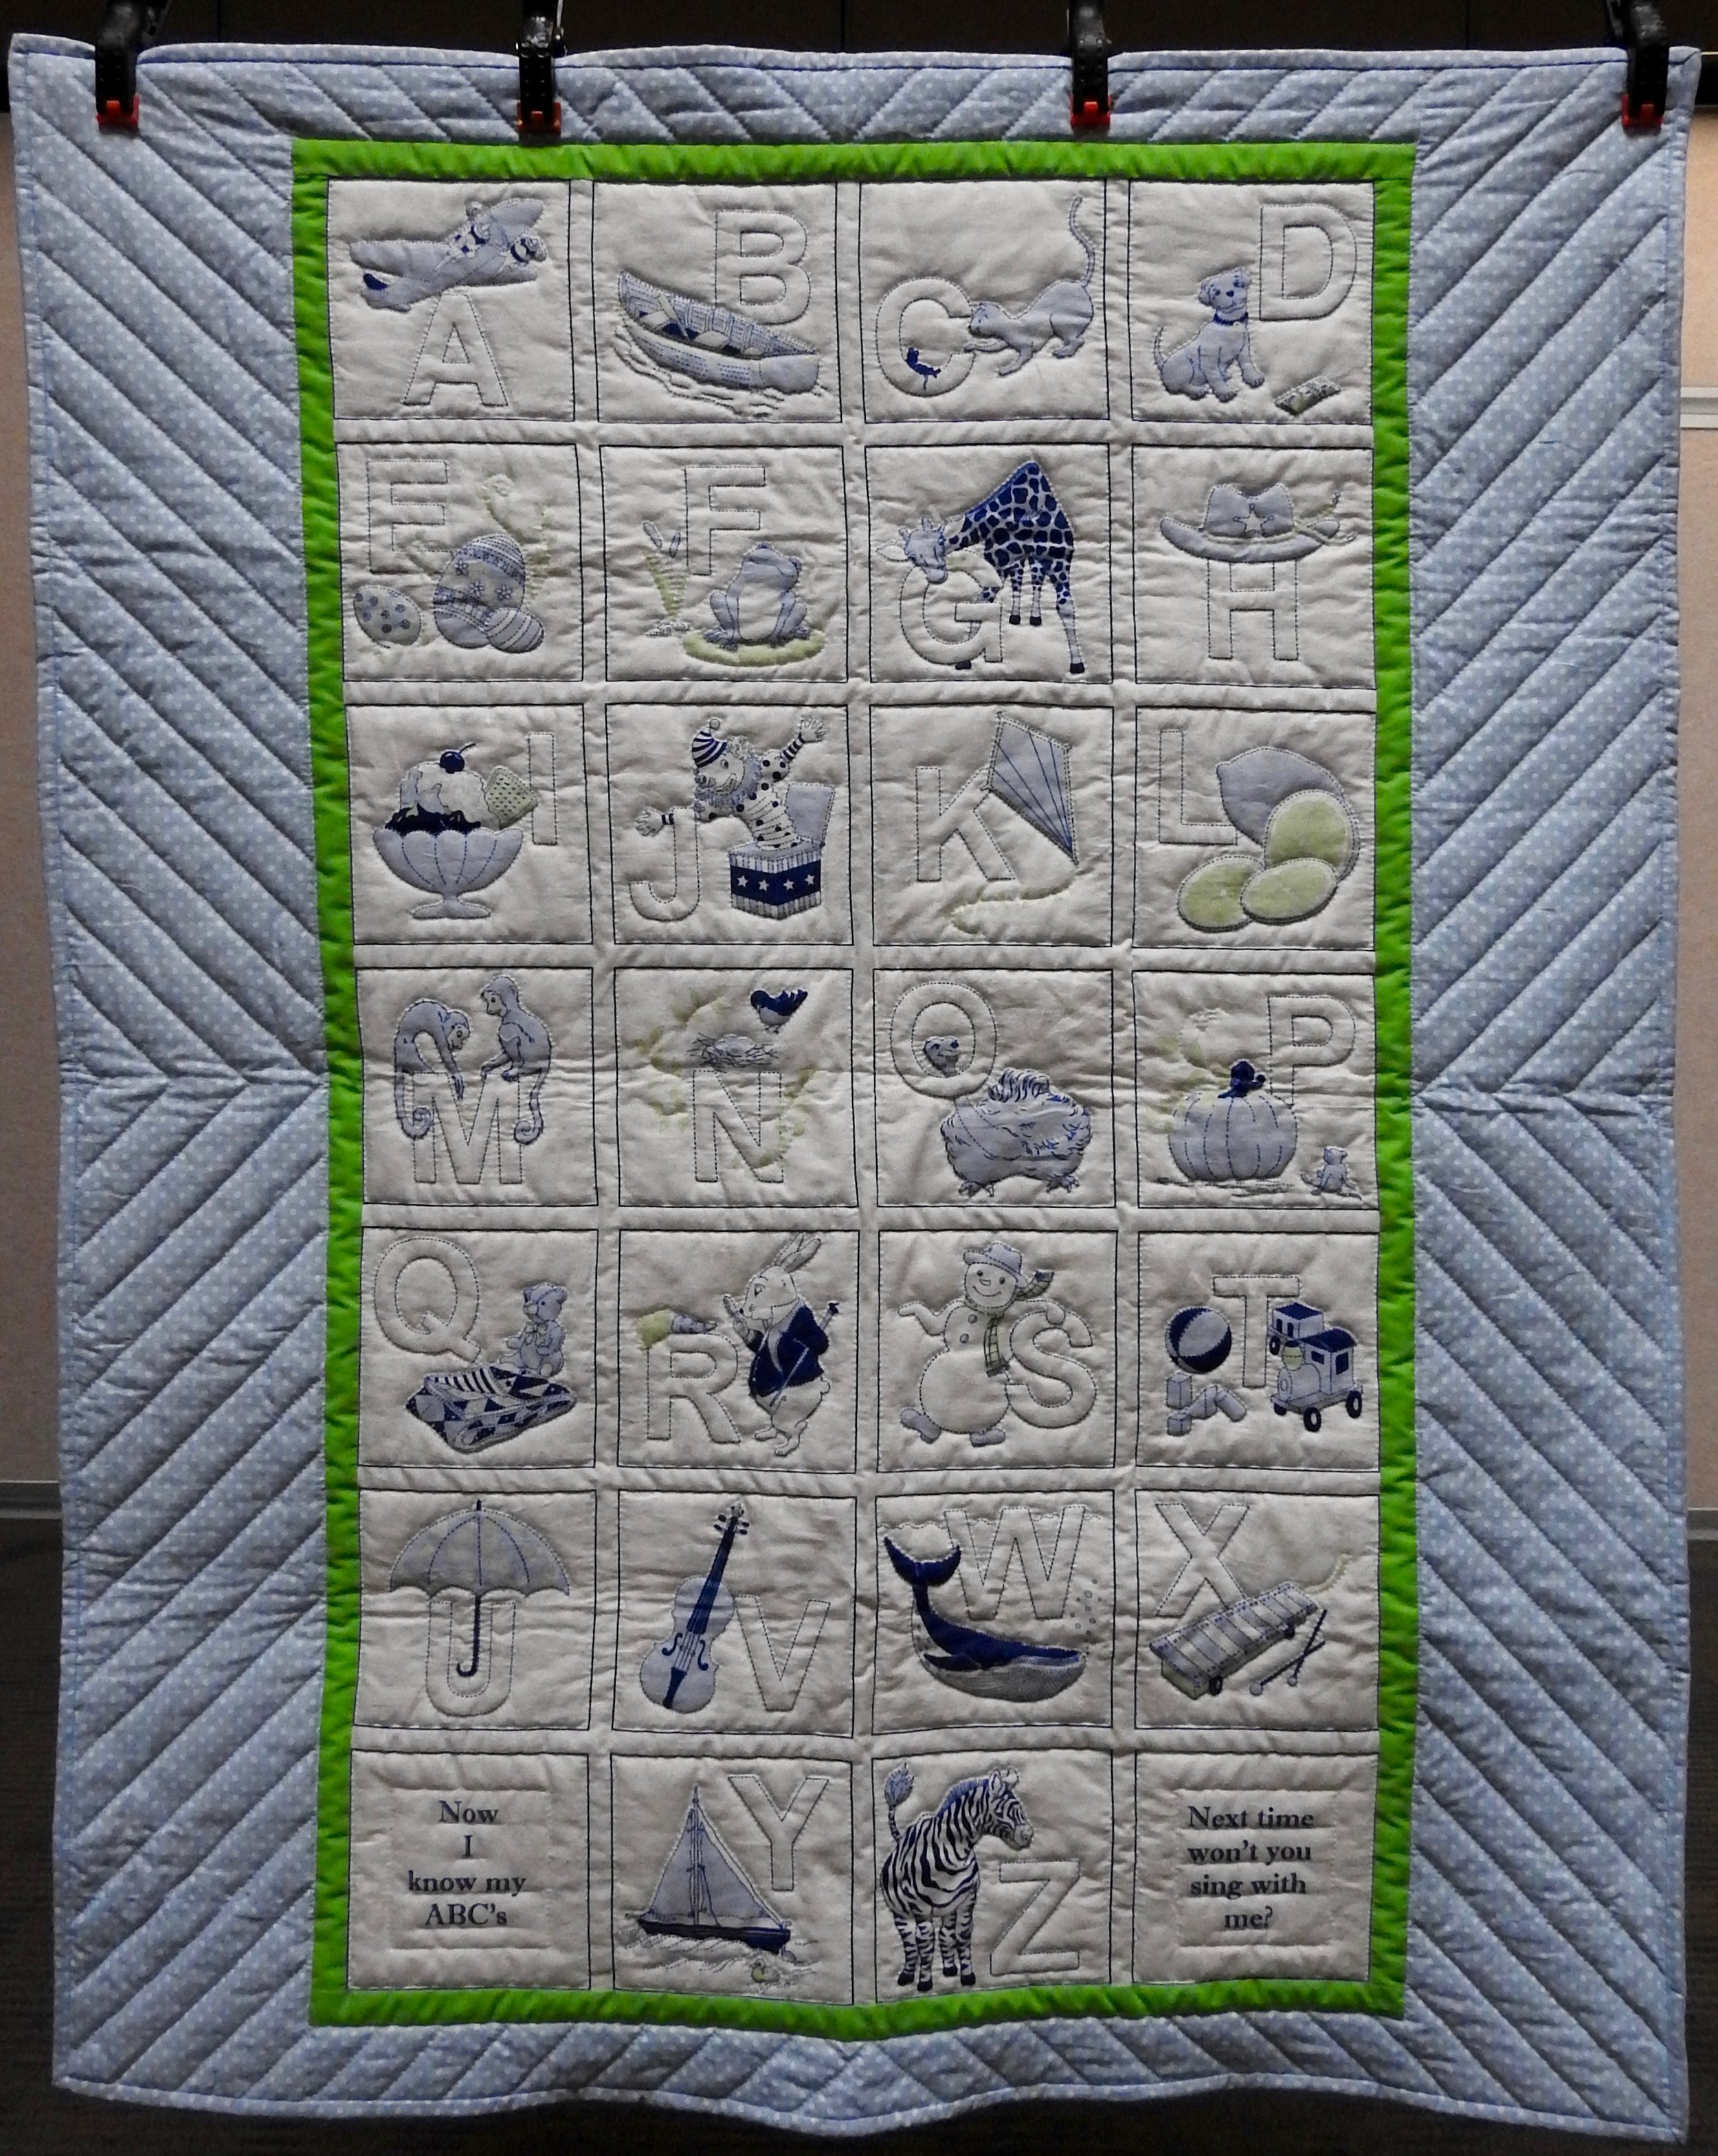 Alphabet Baby Quilt, Pre-printed fabric, Hand Quilted by Virginia A. Hartsough, 36 x 45